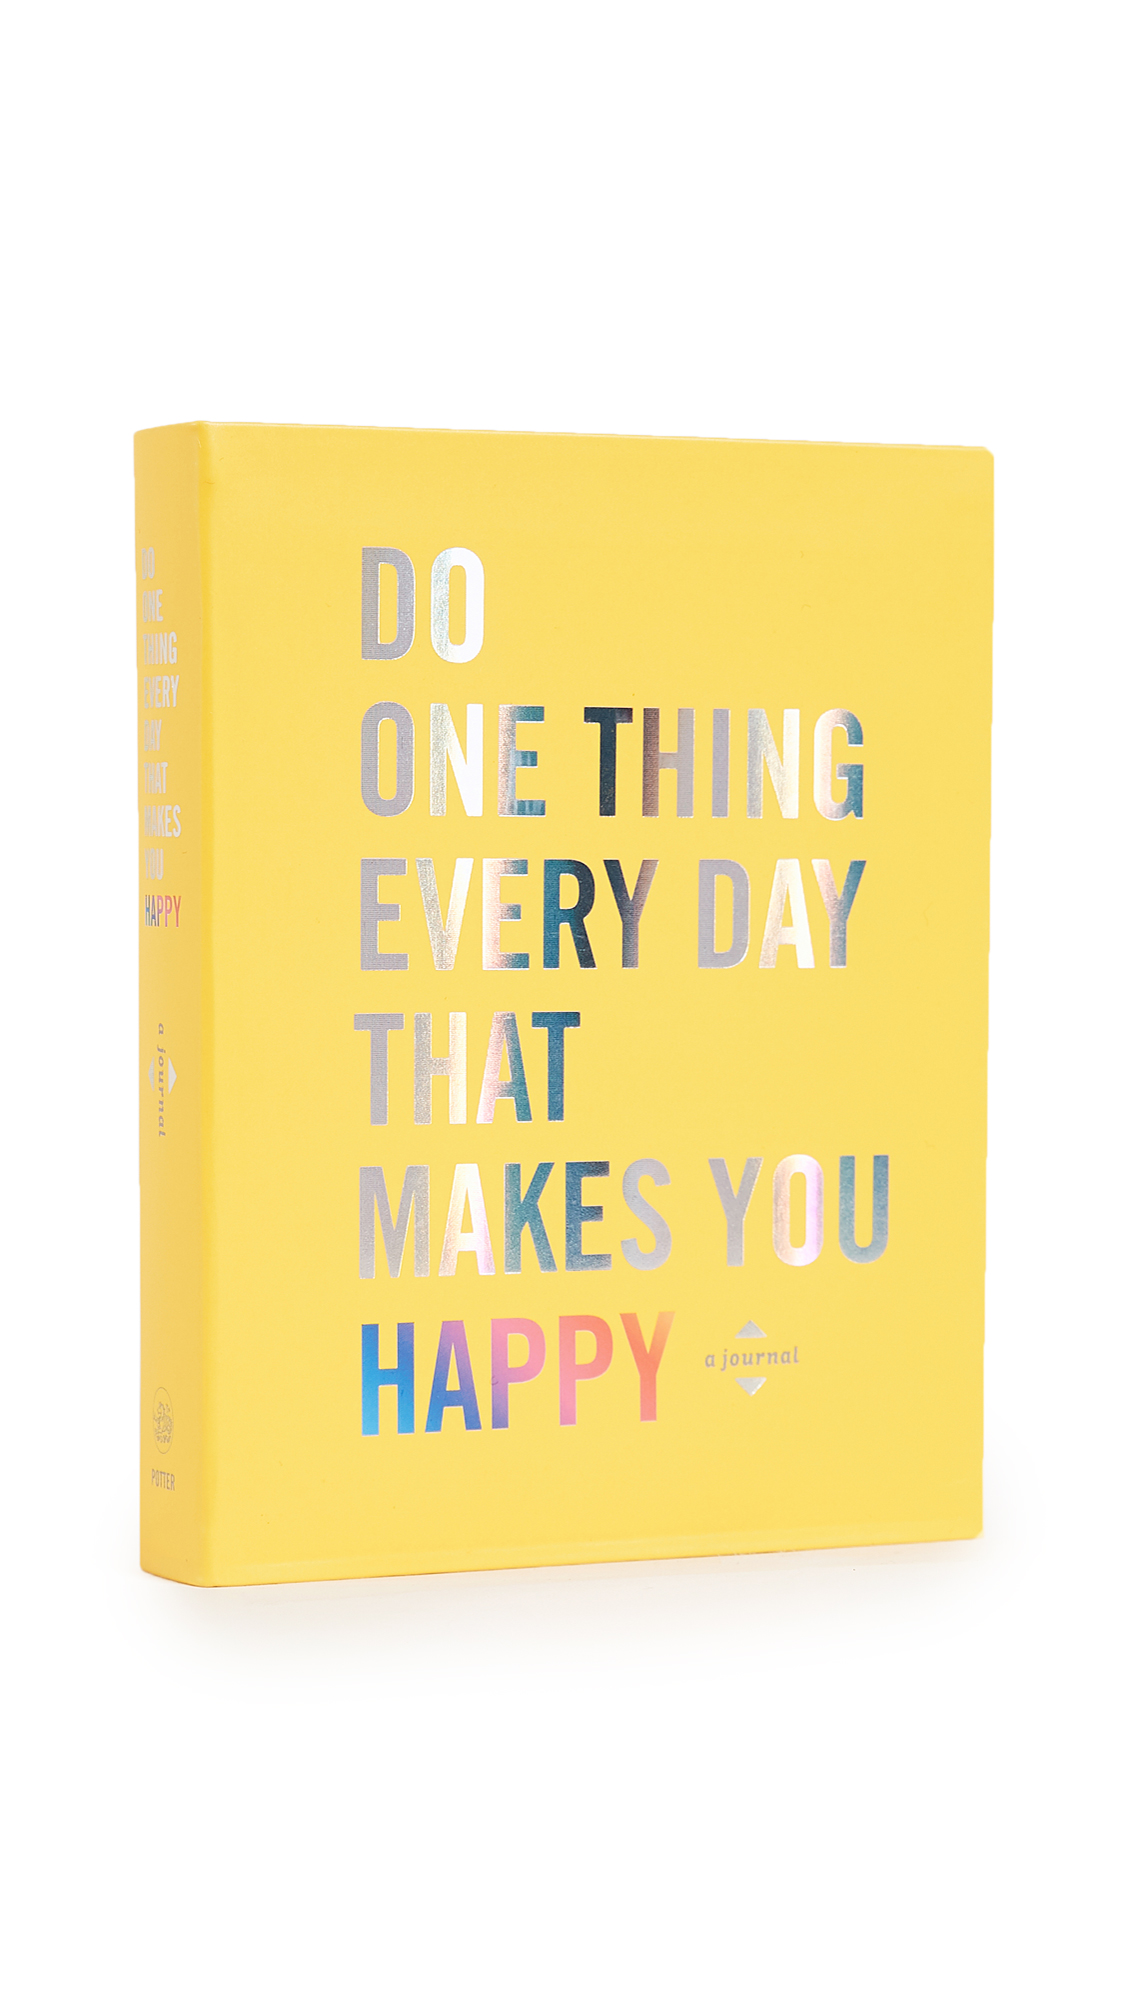 This journal will guide you to look inside and outside yourself to discover and appreciate what makes you happiest. With prompts and exercises, the wise words of writers, musicians, philosophers, and leaders will help you reflect on what fills you with joy. You'll measure your happiness at the outset and along the way; after a year's worth of delight, your smile will be bigger than ever. Imported, China. By Sir John Lubbock. Paperback. Imprint: Clarkson Potter/Publishers. ISBN: 978-0-451-49680-5 Measurements Width: 4.75in / 12cm Height: 1in / 2.5cm Length: 6in / 15cm